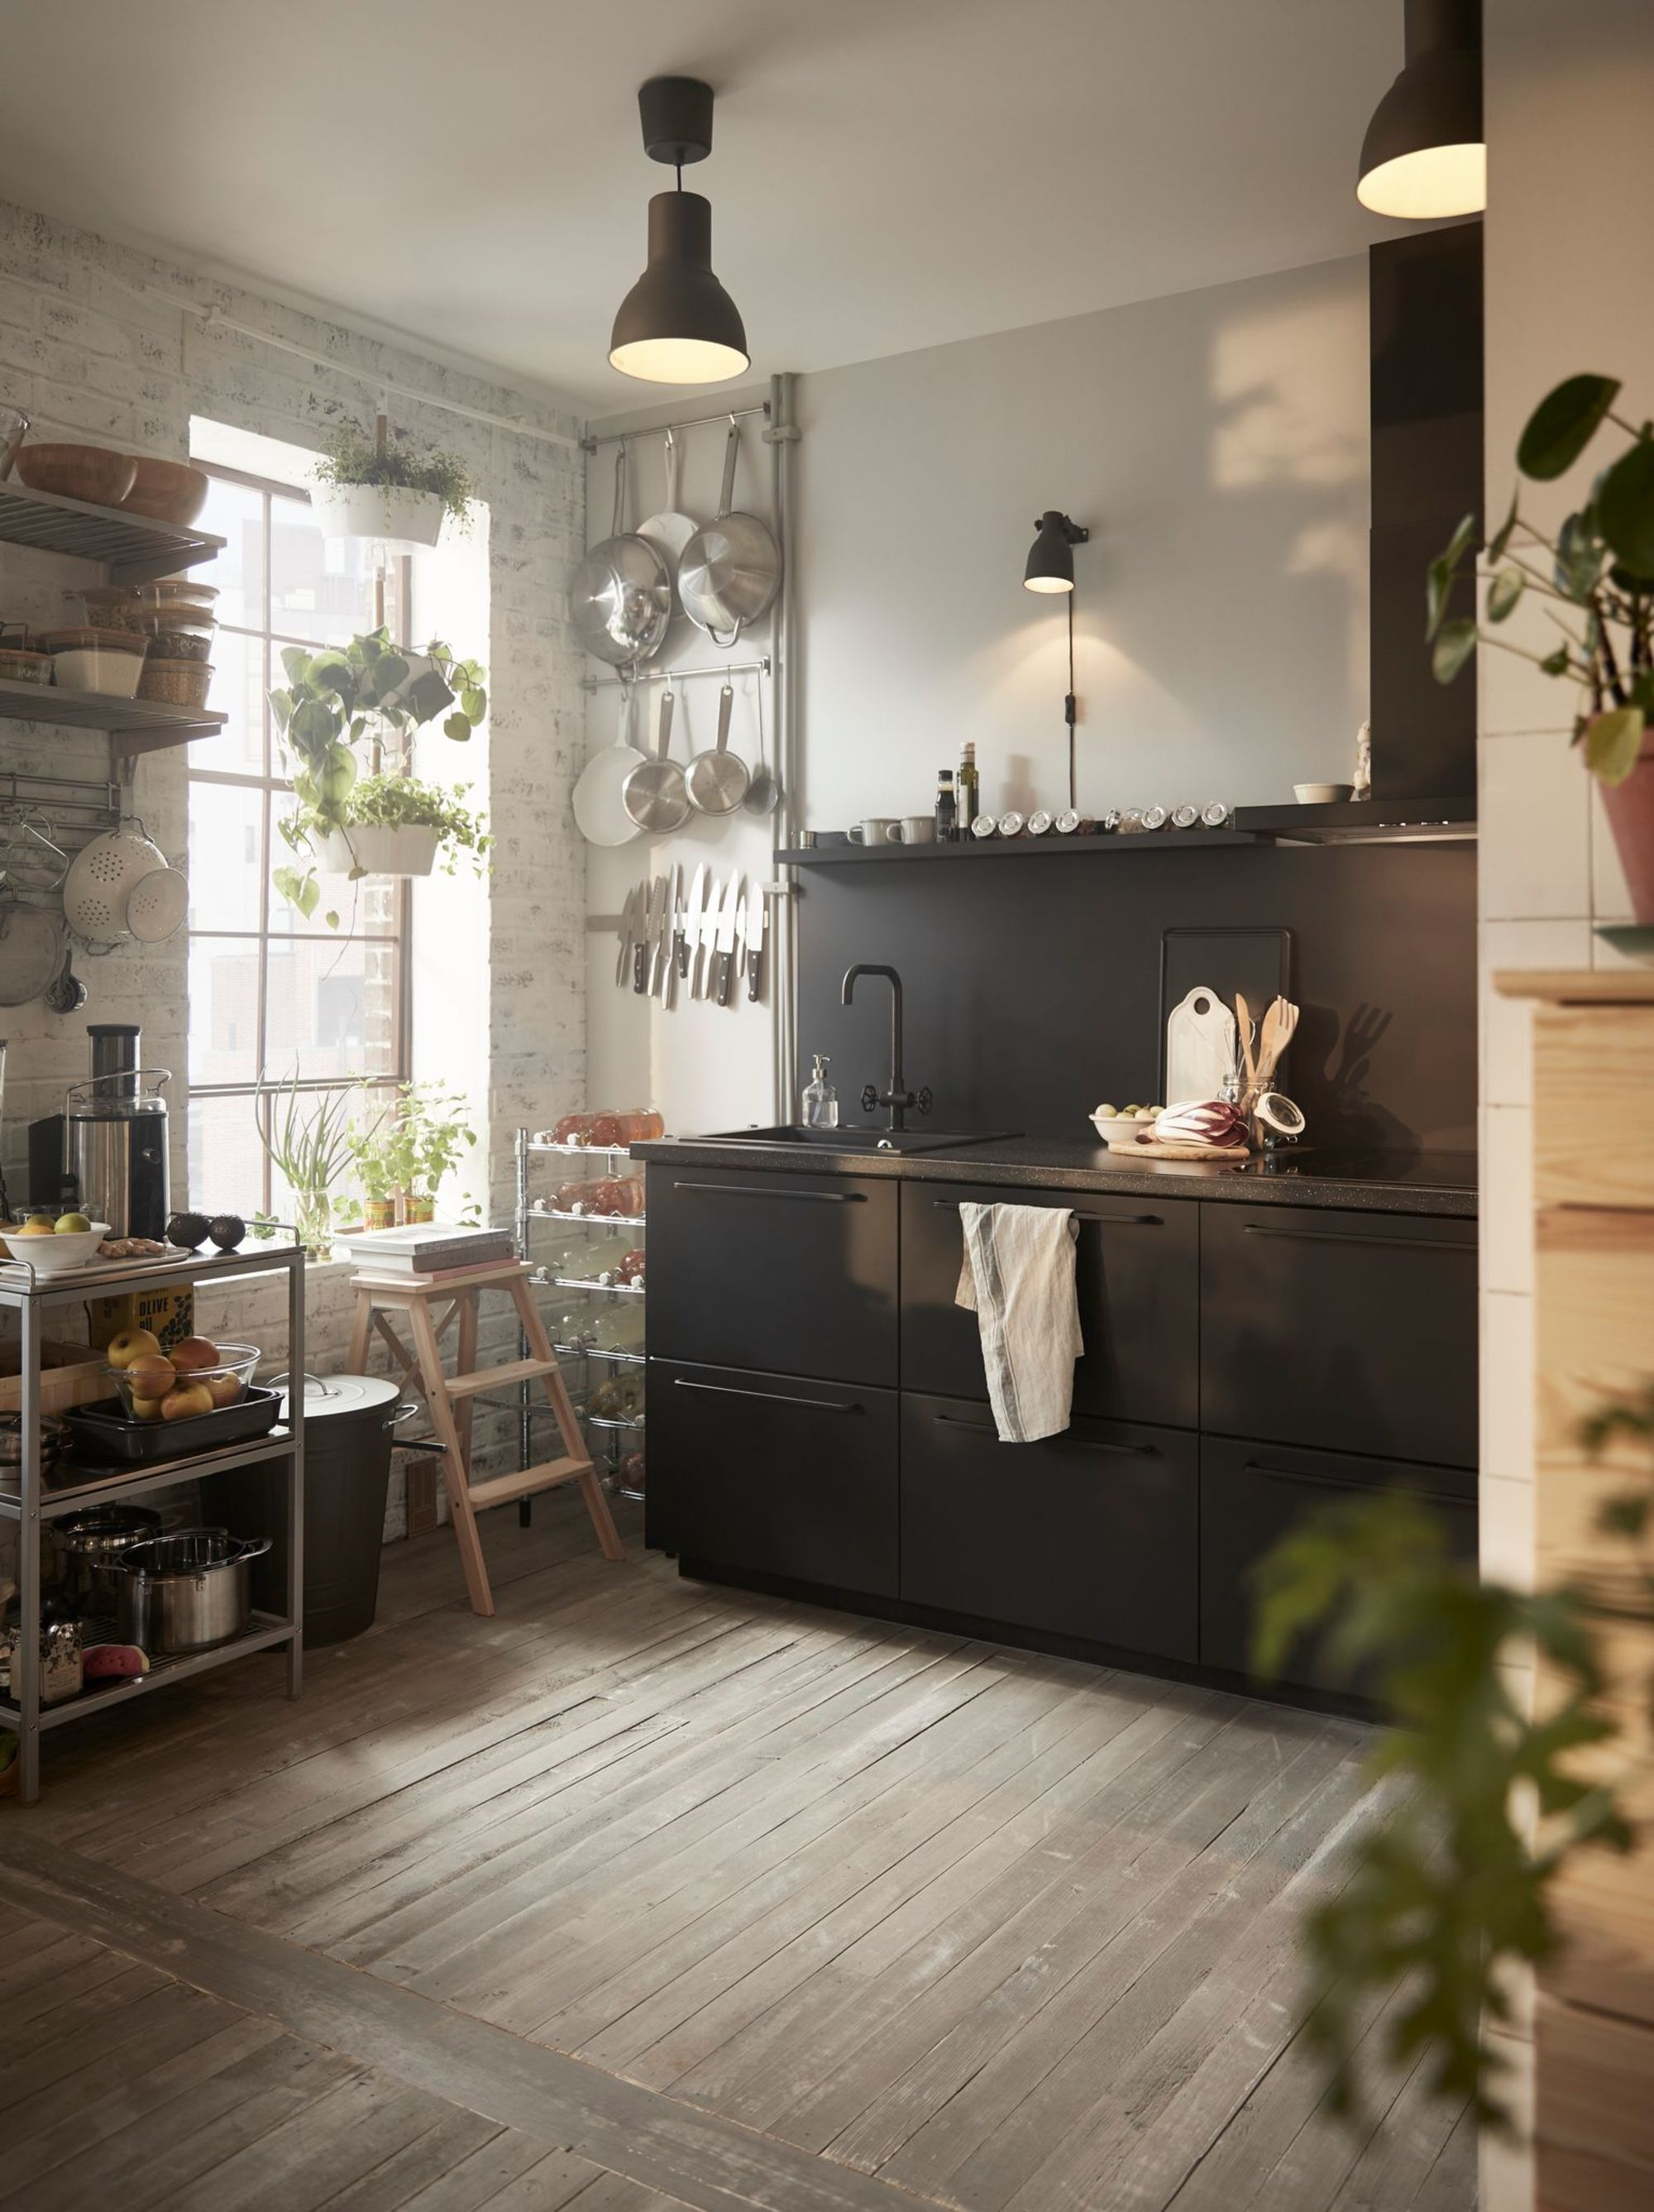 Ikea le catalogue du printemps 2019 est là ! (с